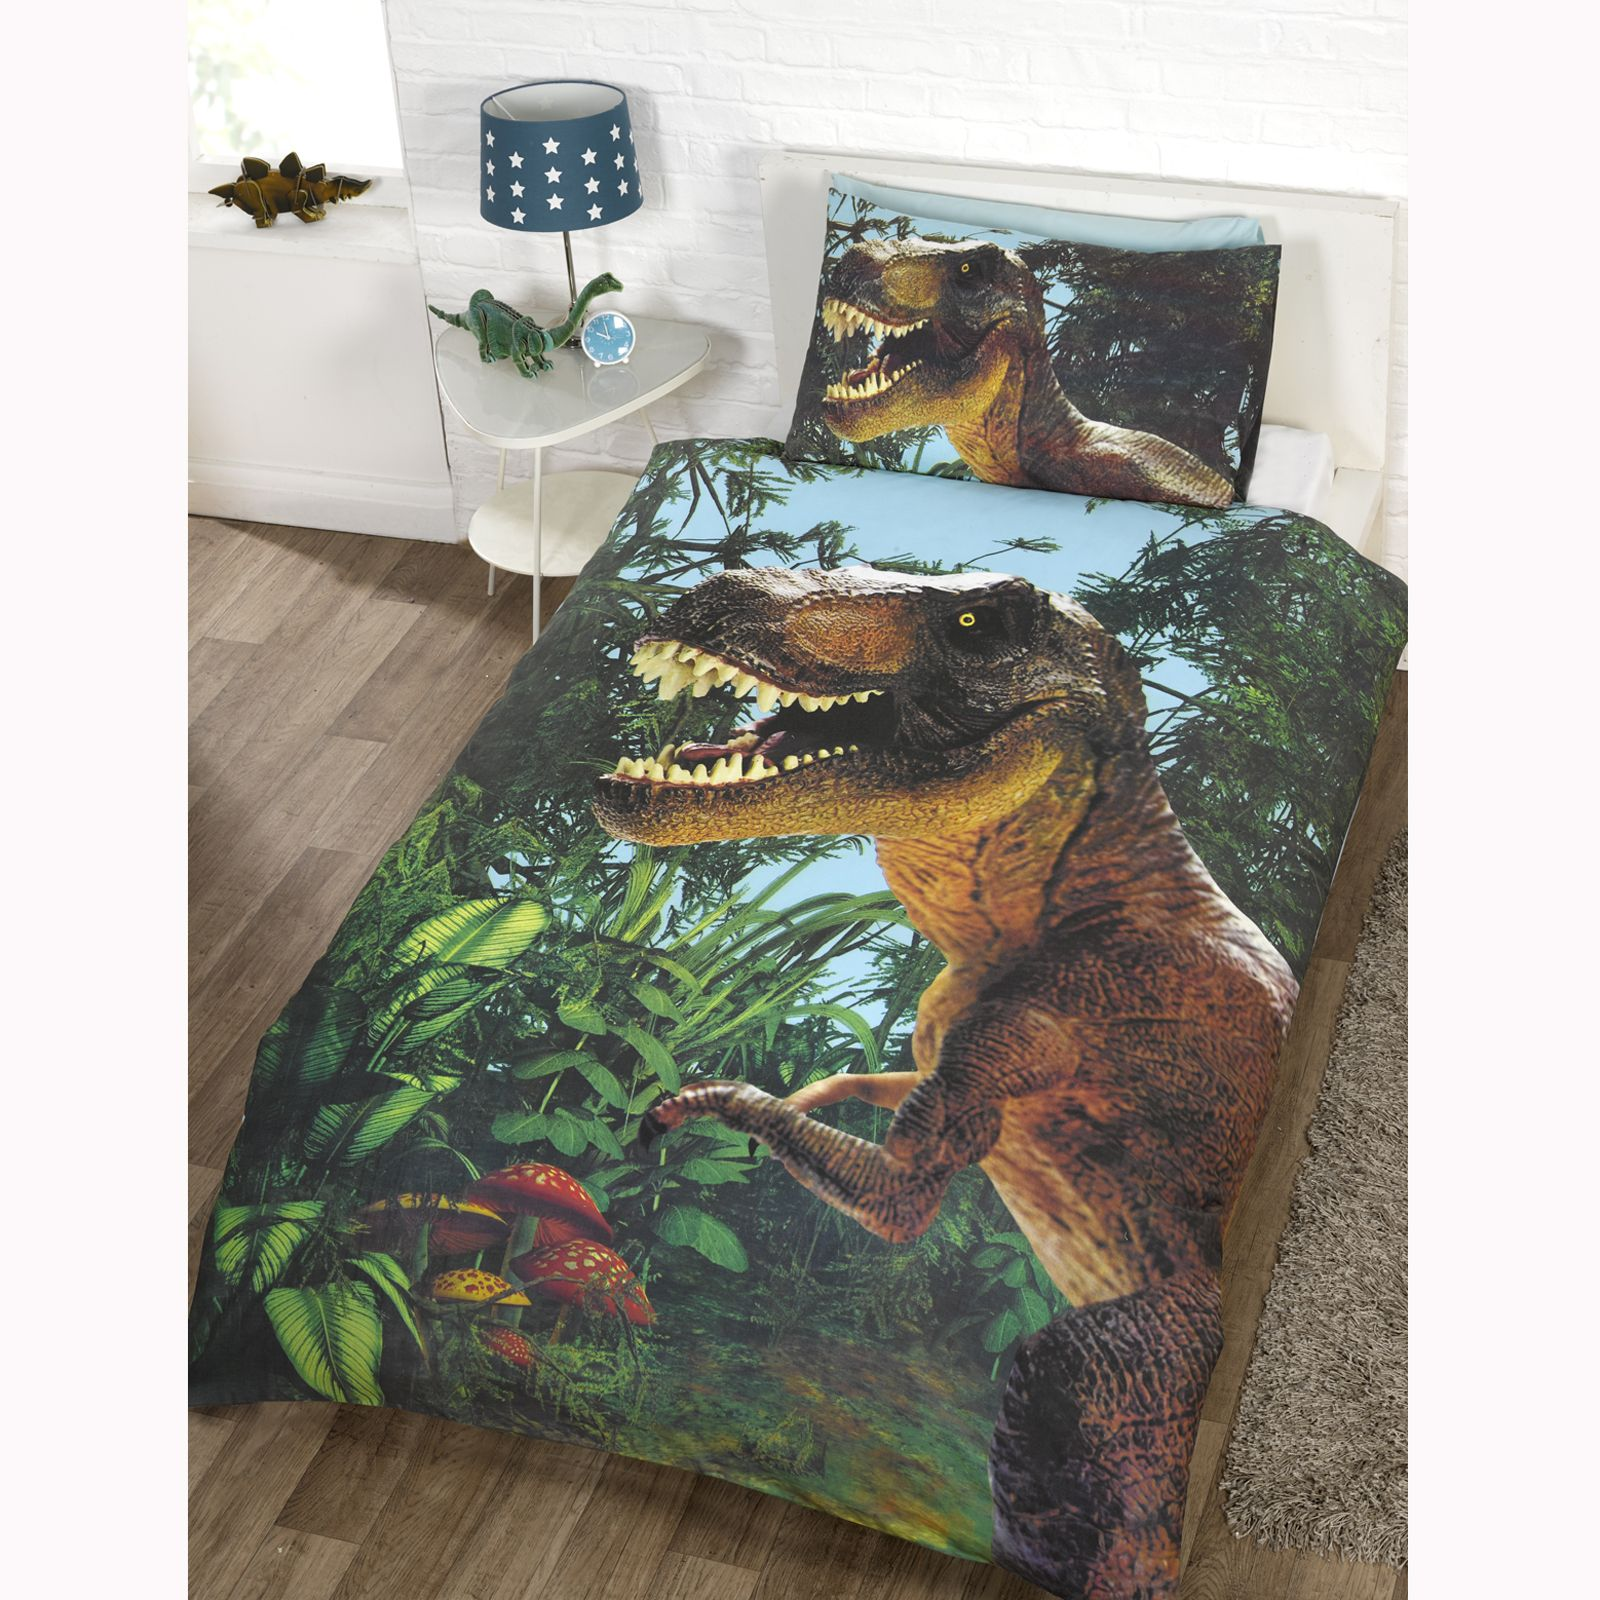 dinosaur design single duvet cover sets boys bedding bedroom ebay. Black Bedroom Furniture Sets. Home Design Ideas